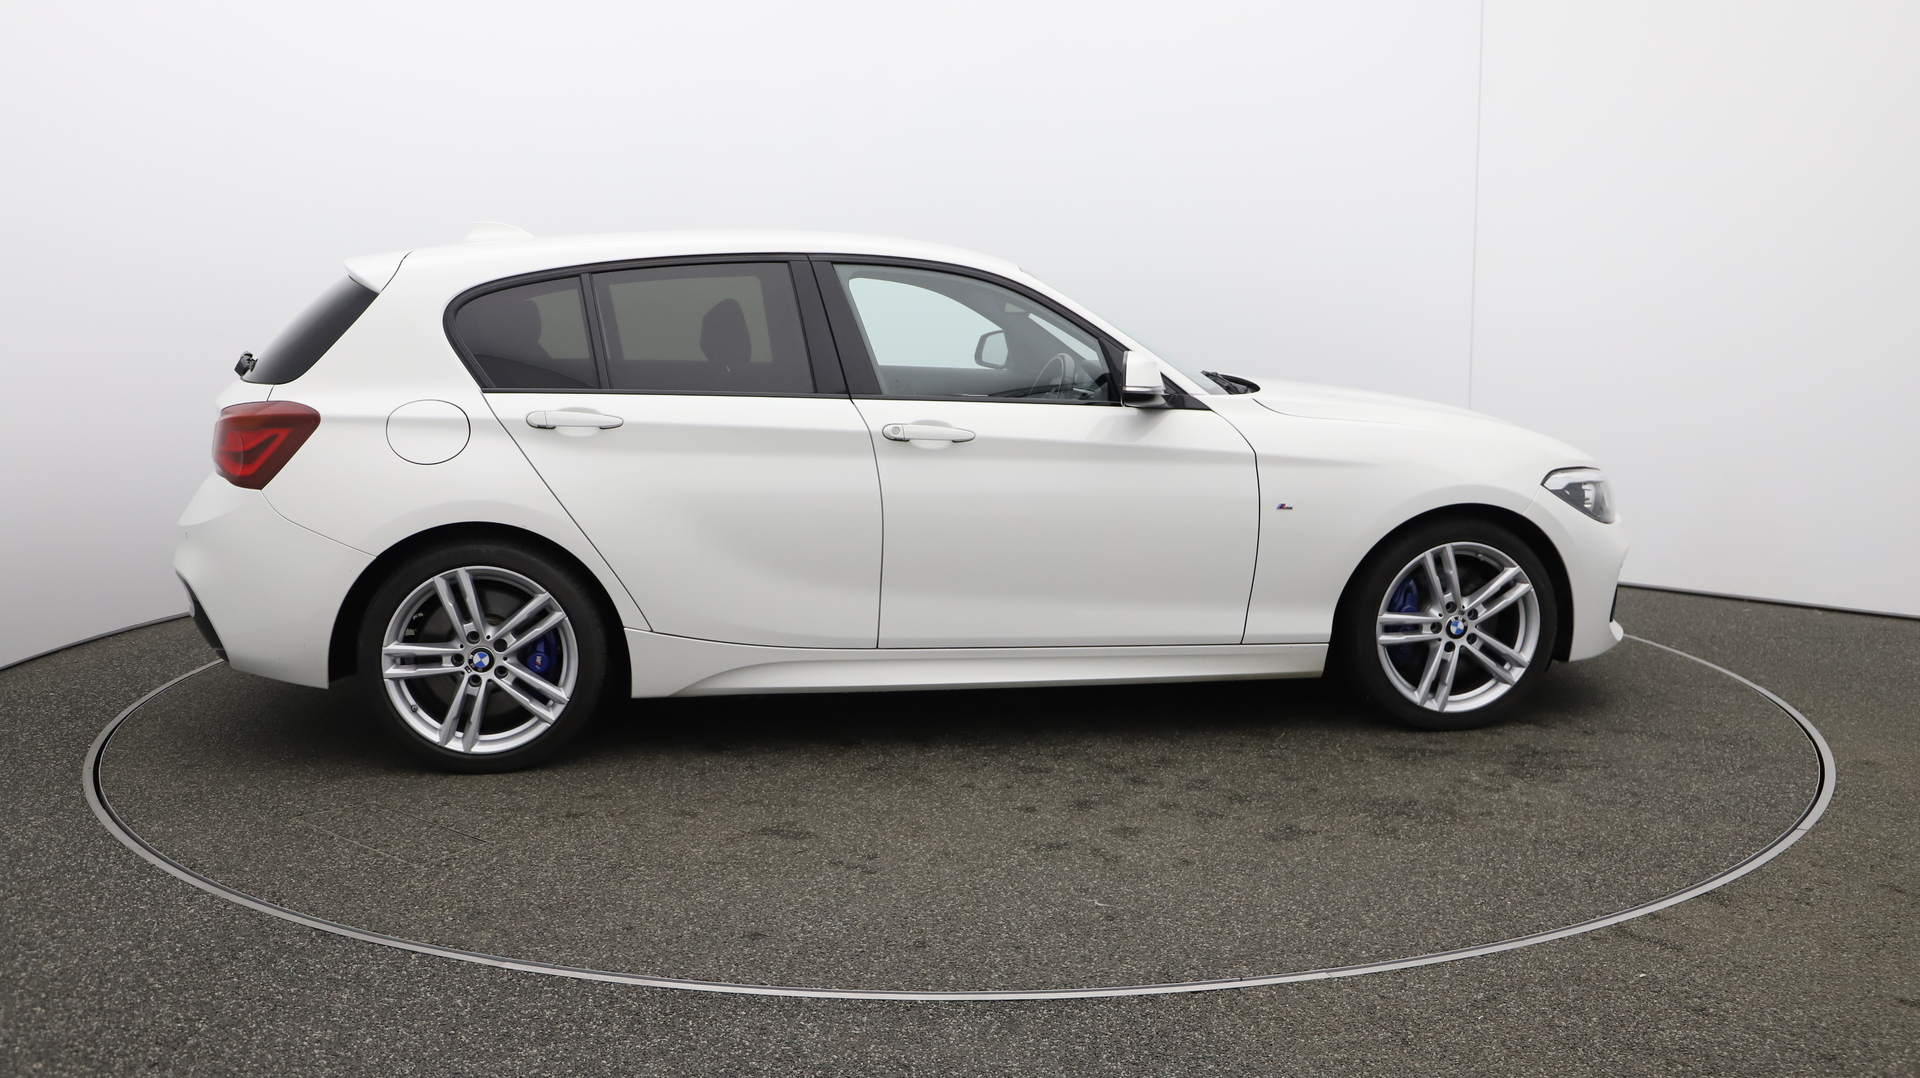 BMW 1 Series 118D M SPORT SHADOW EDITION Service History